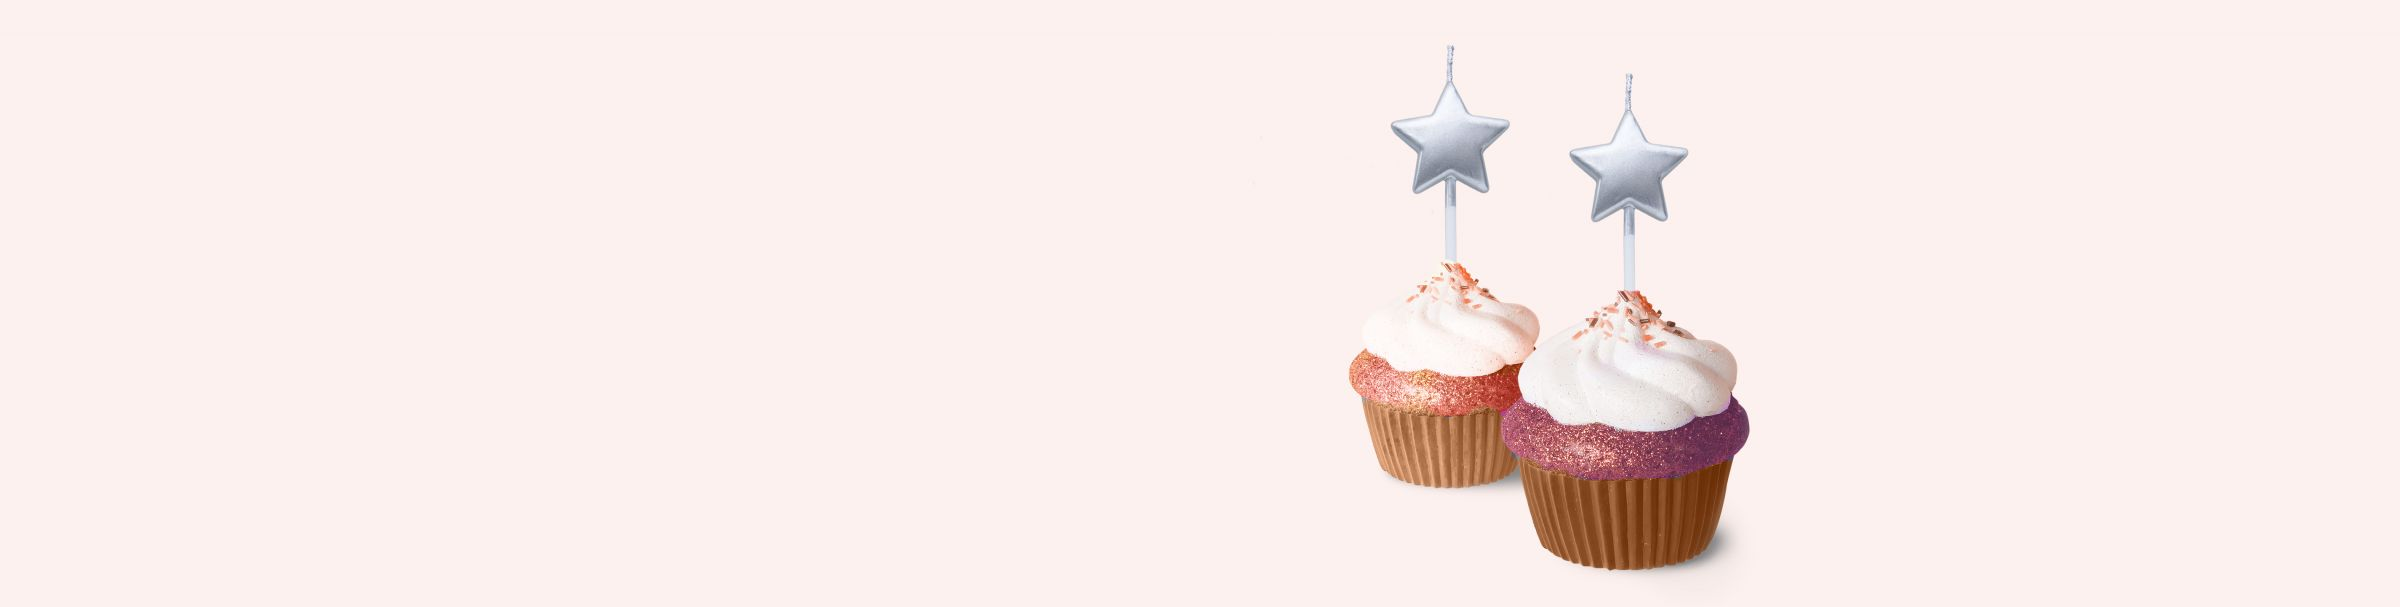 Star Candle For Party Cake